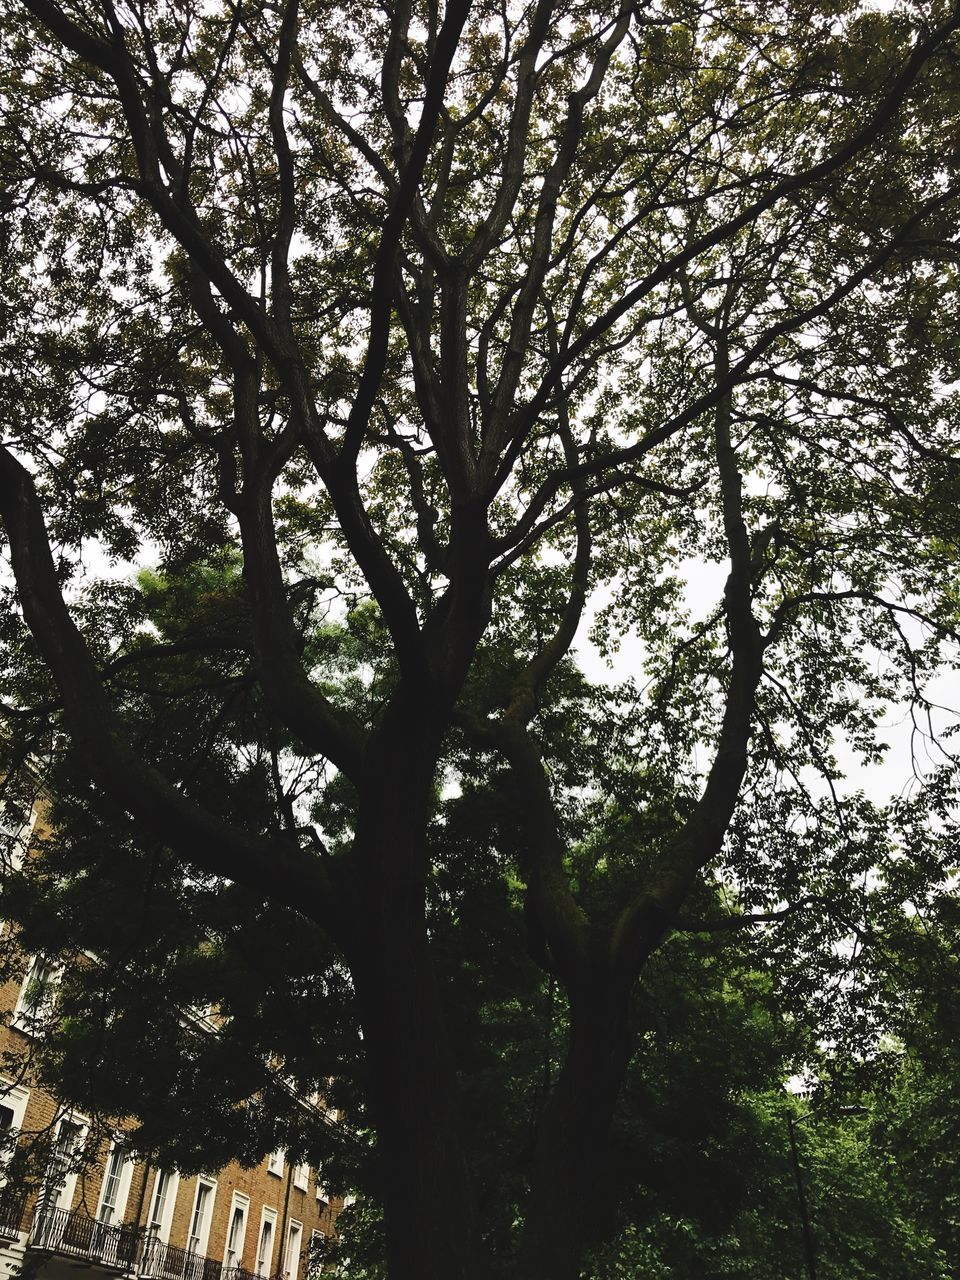 tree, day, low angle view, branch, outdoors, nature, growth, tree trunk, sunlight, no people, tranquility, forest, beauty in nature, sky